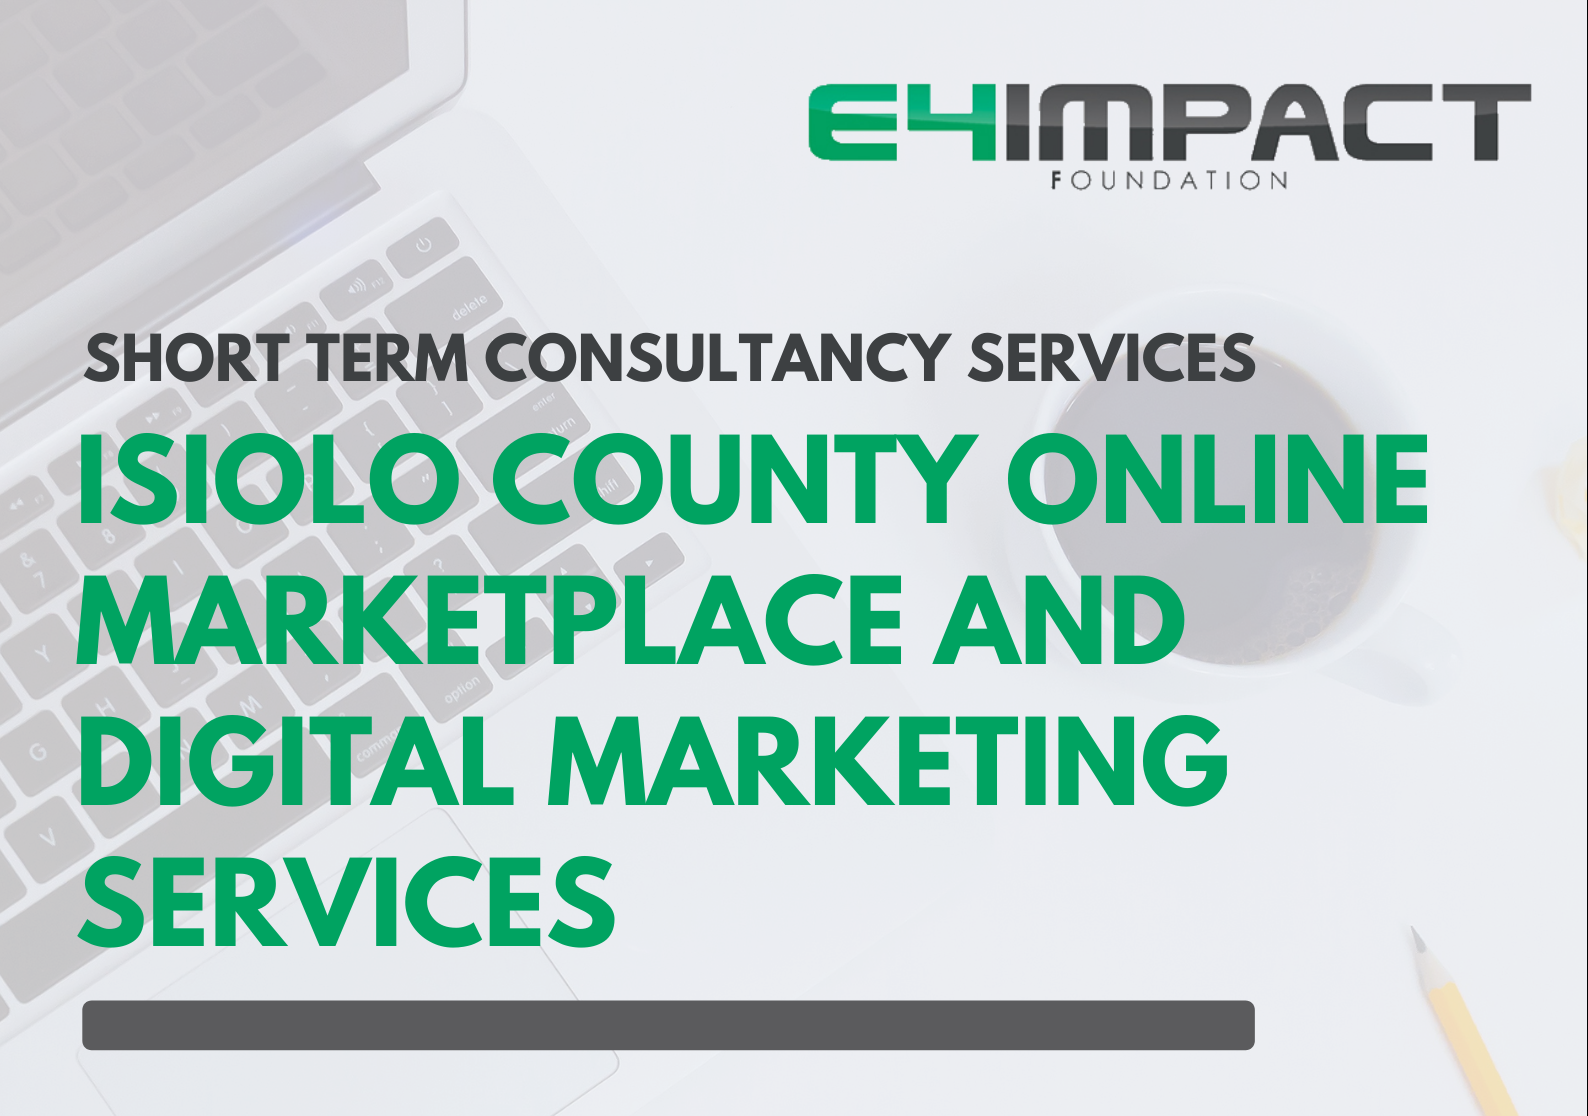 Isiolo County Online Marketplace and Digital Marketing Services